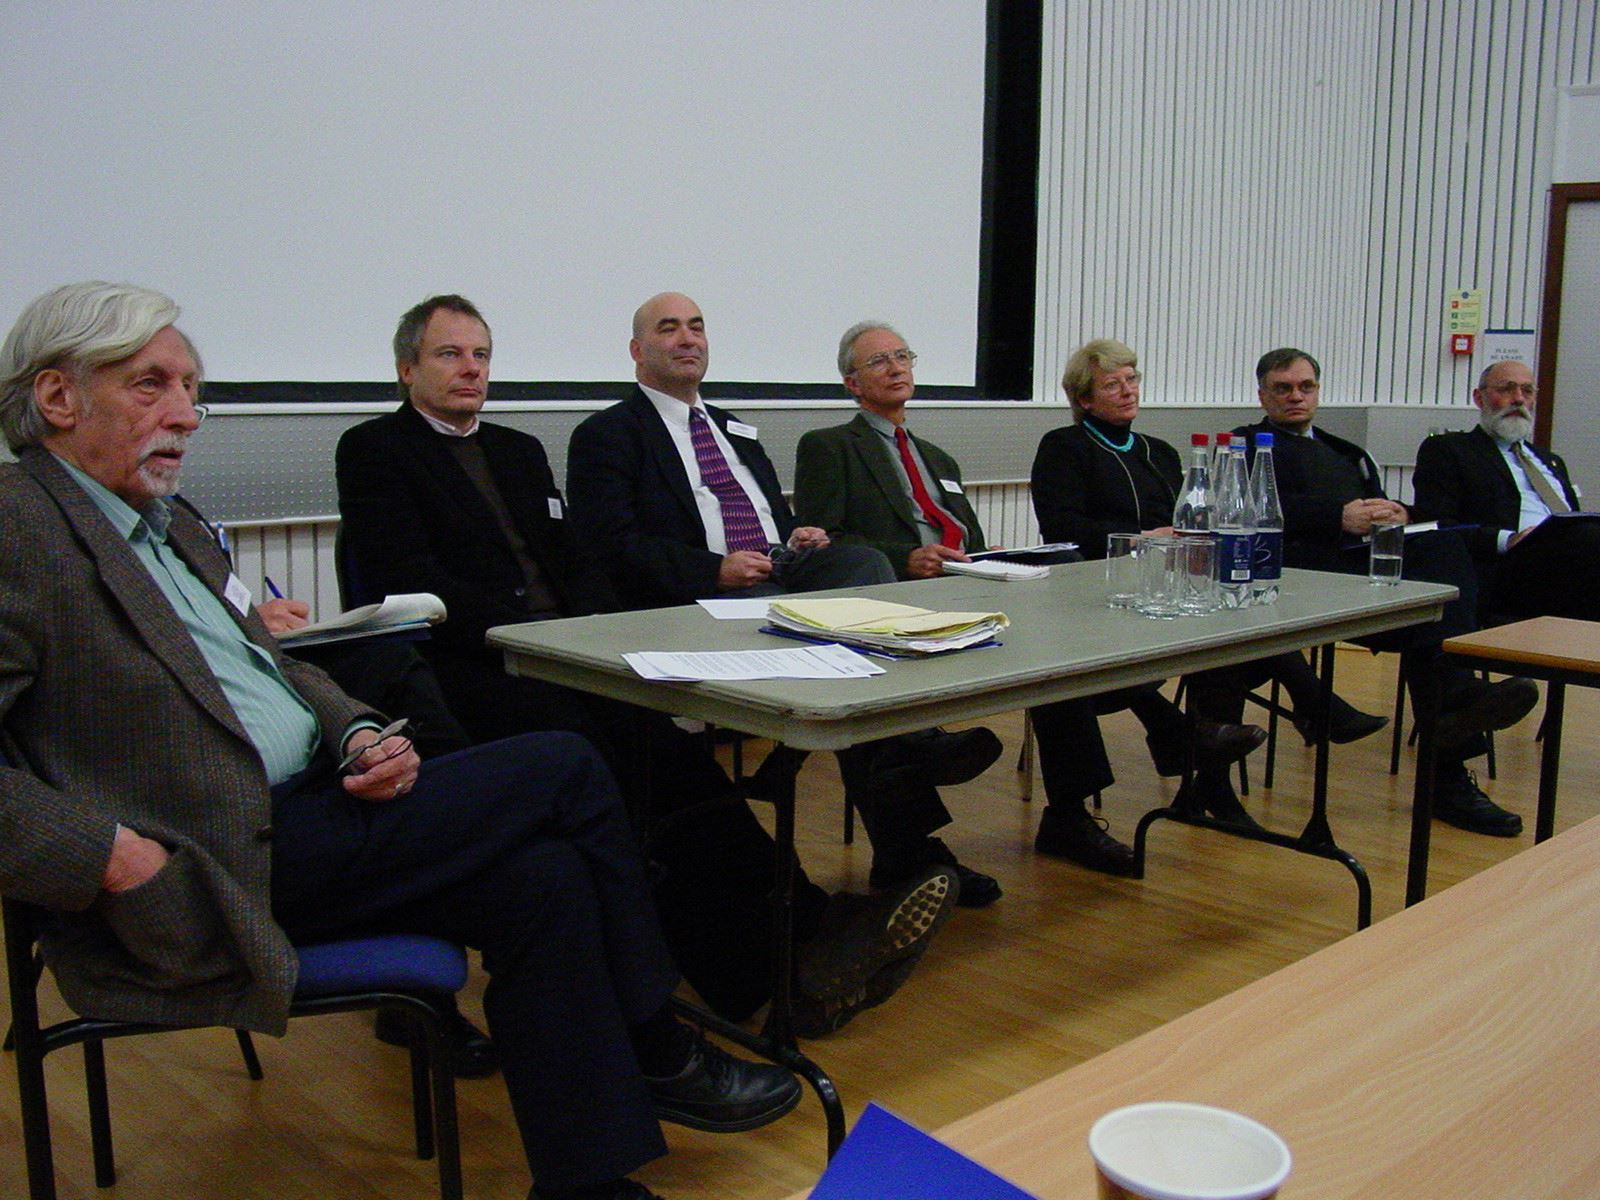 Paul Oliver (left) with leading lights of vernacular architecture study at the Oxford conference, 2006